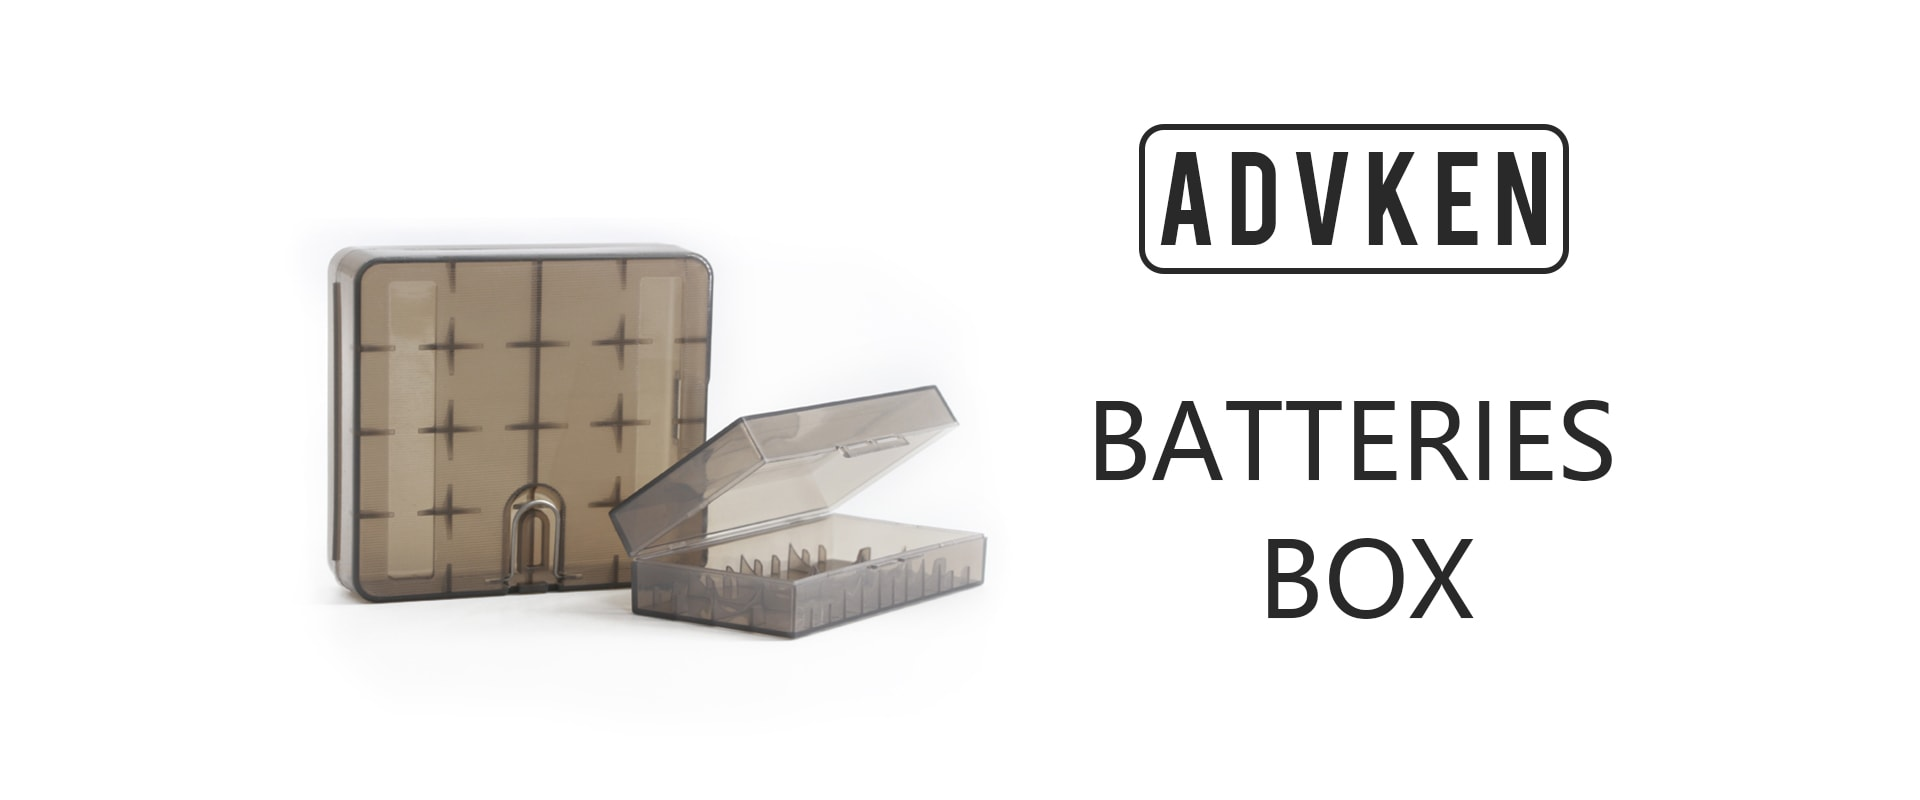 advken 18650 battery box